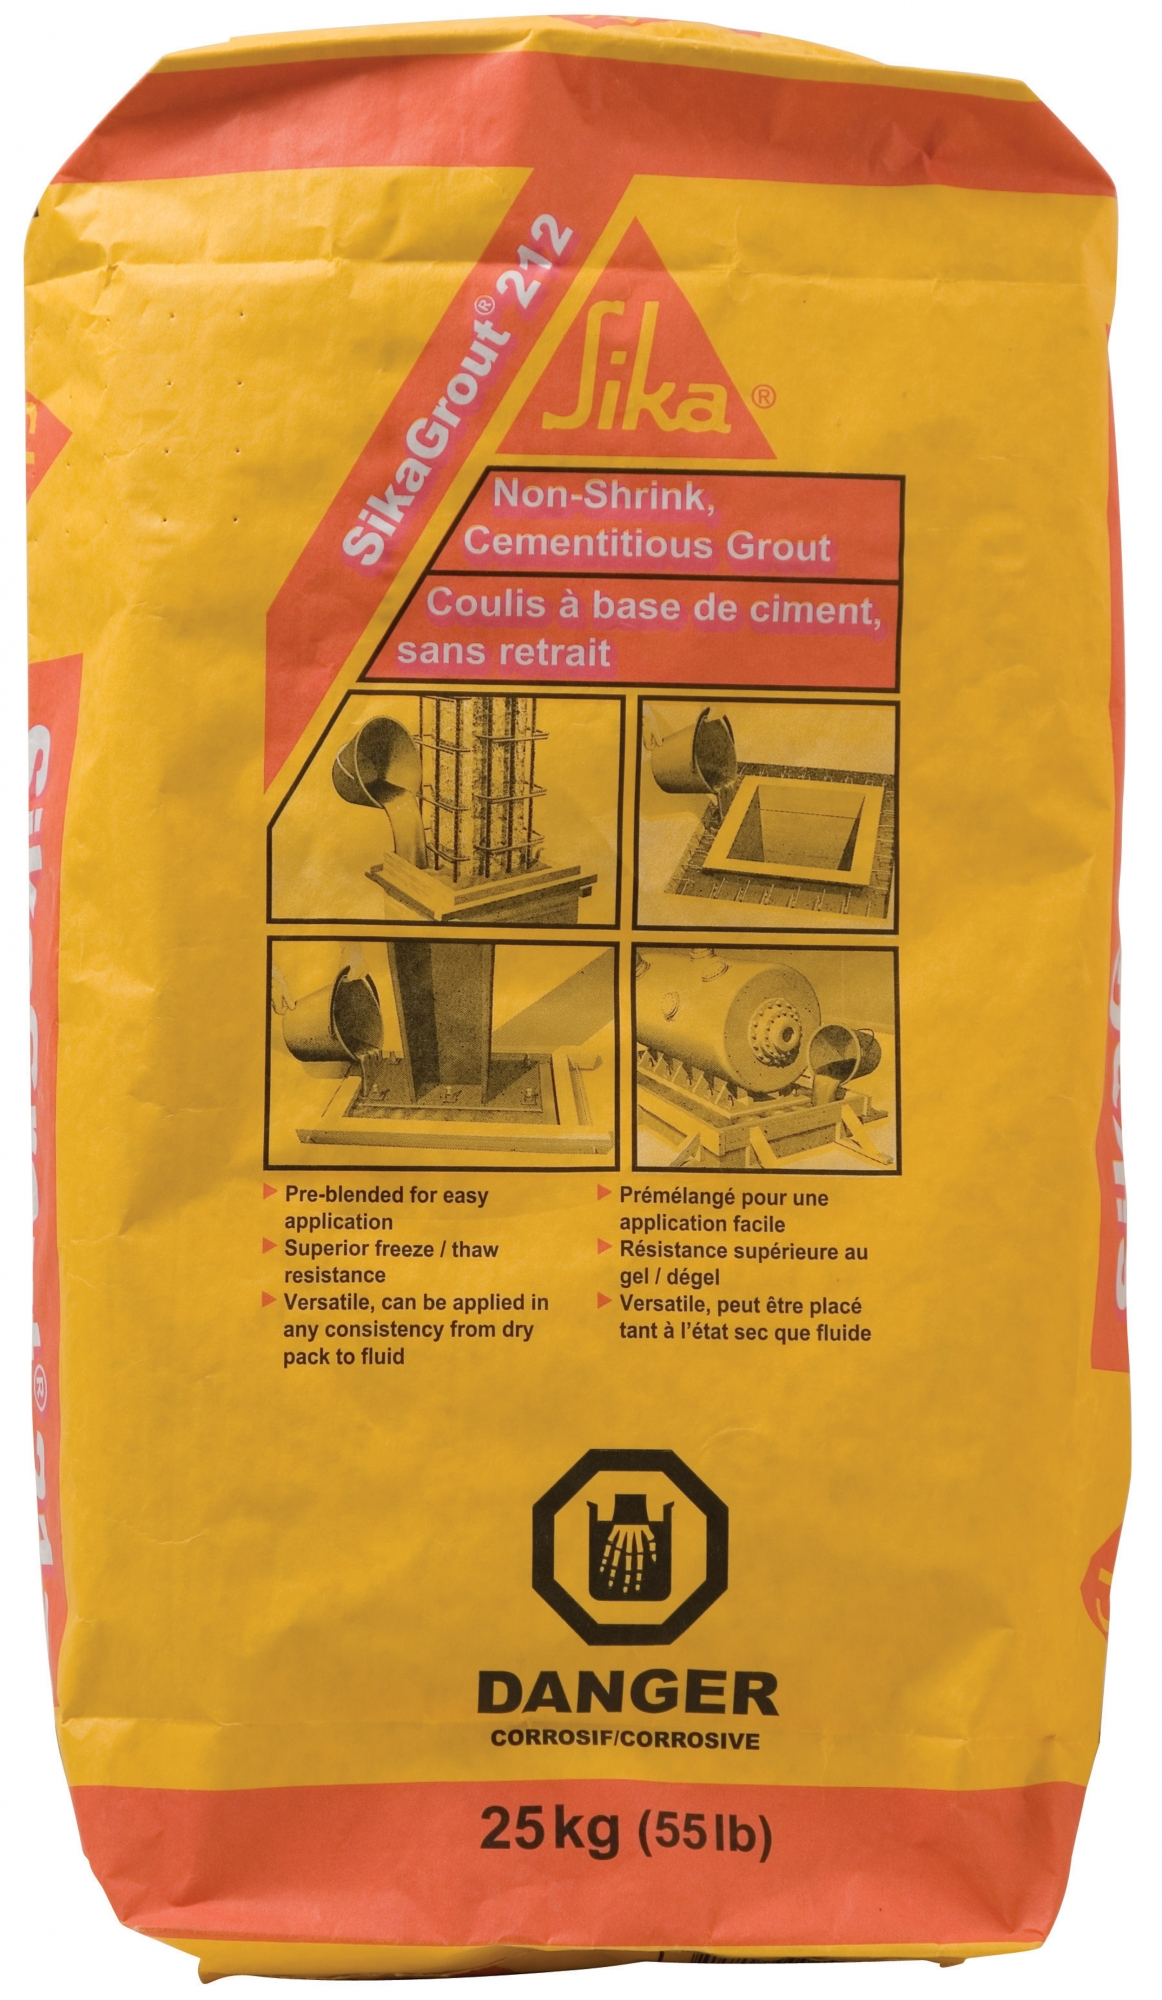 Non-Shrink Grout - SIKA 212 | NCA